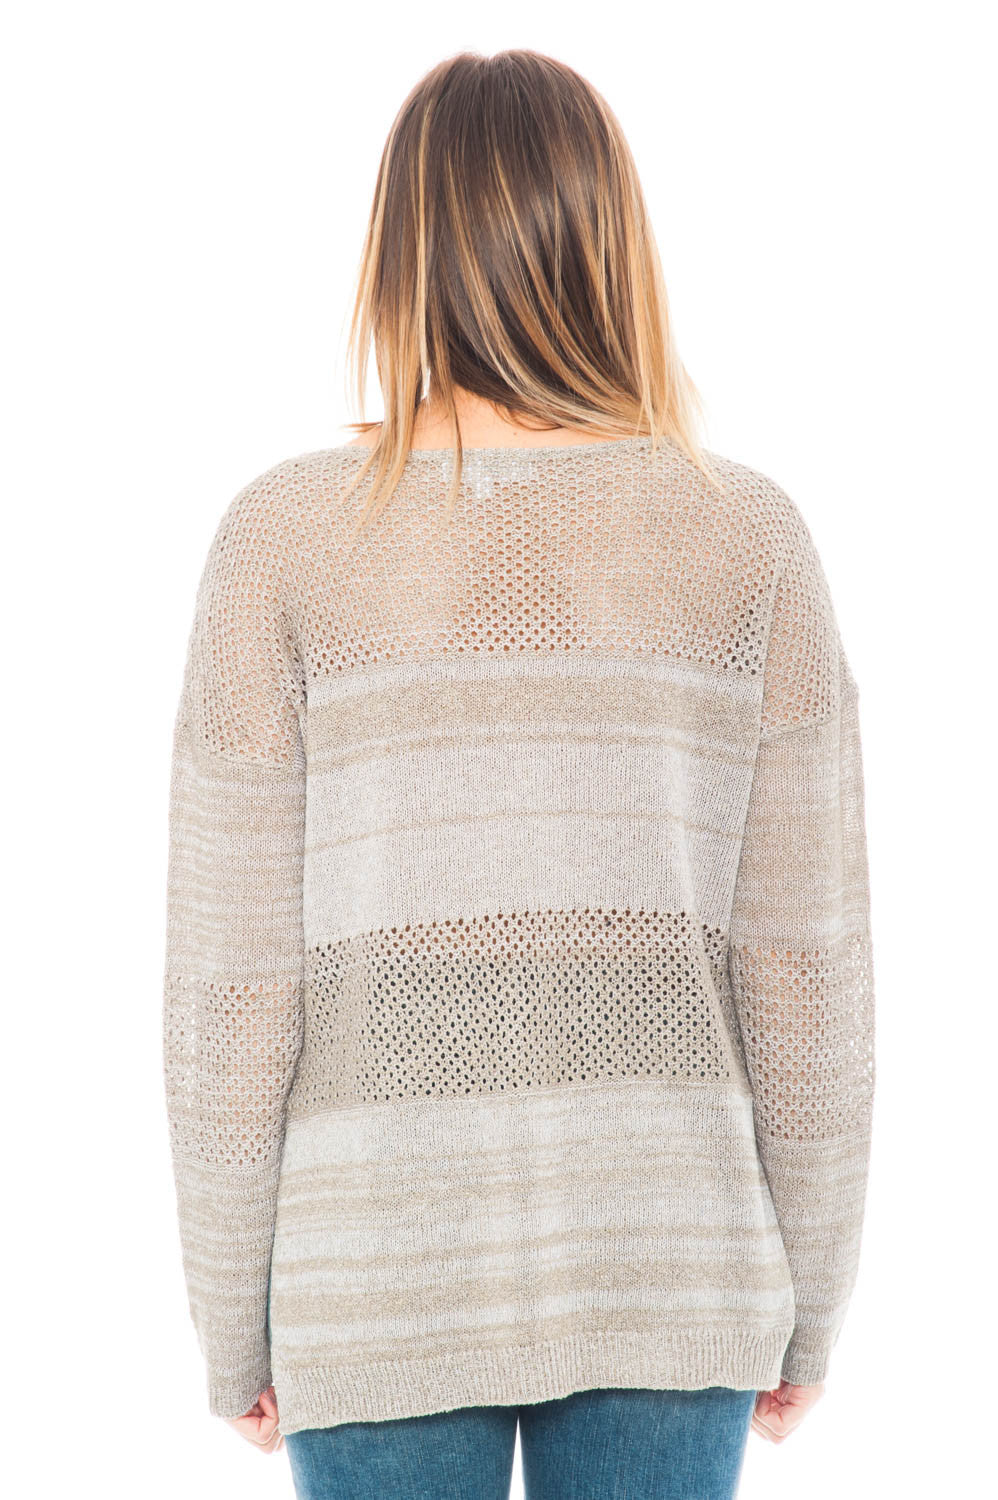 Sweater - Alford by BB Dakota High Low Sweater